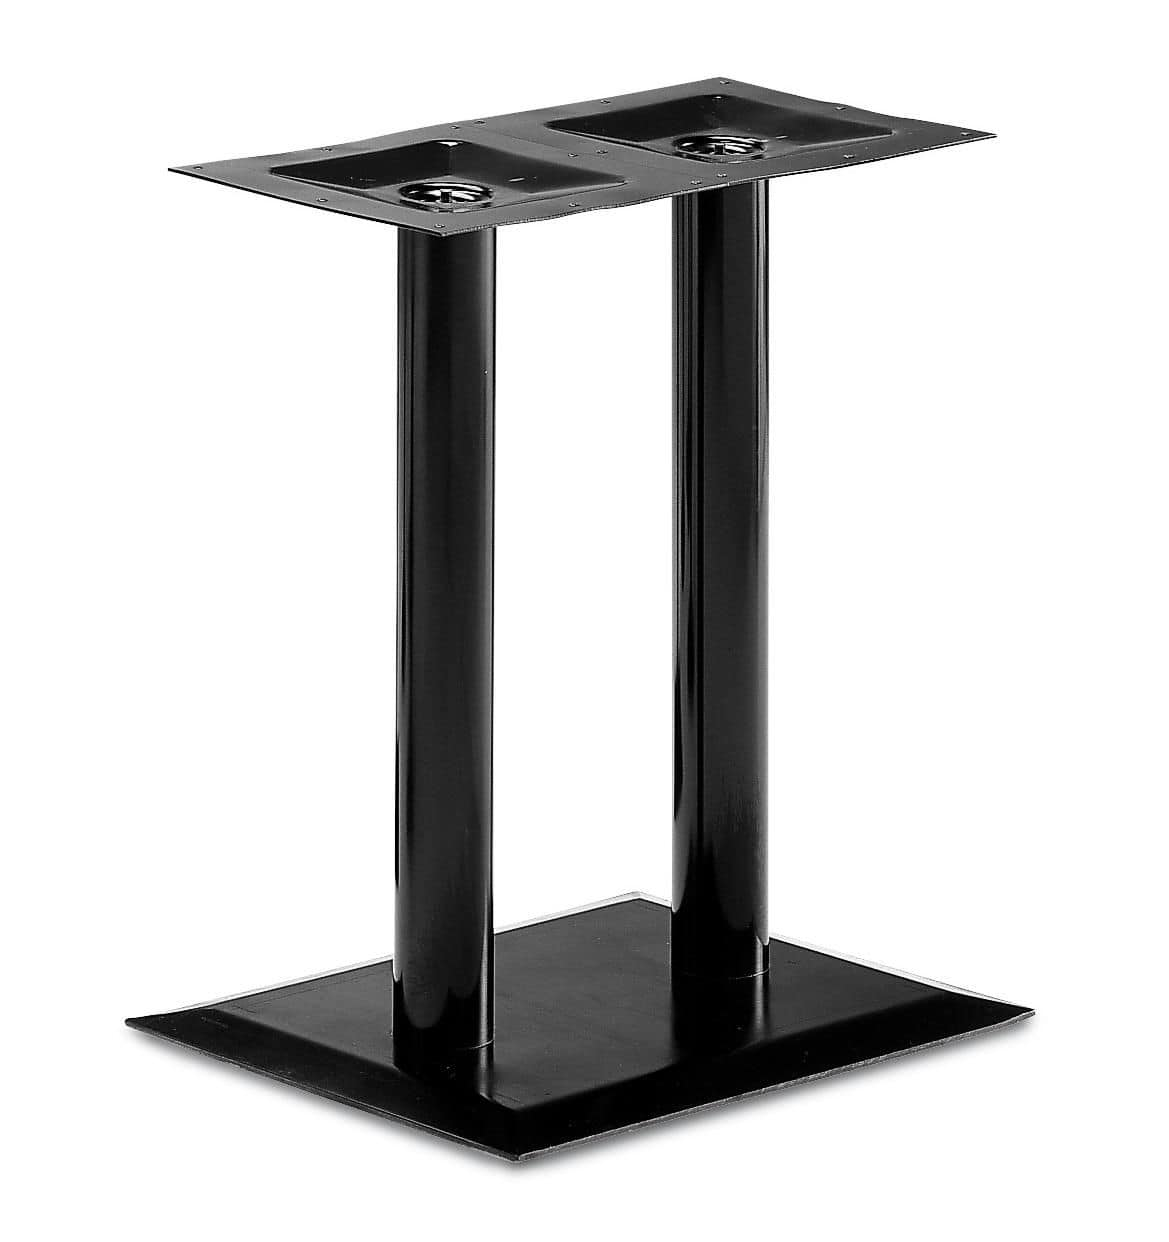 Art.280, Rectangular table base, metal frame, for contract and domestic use